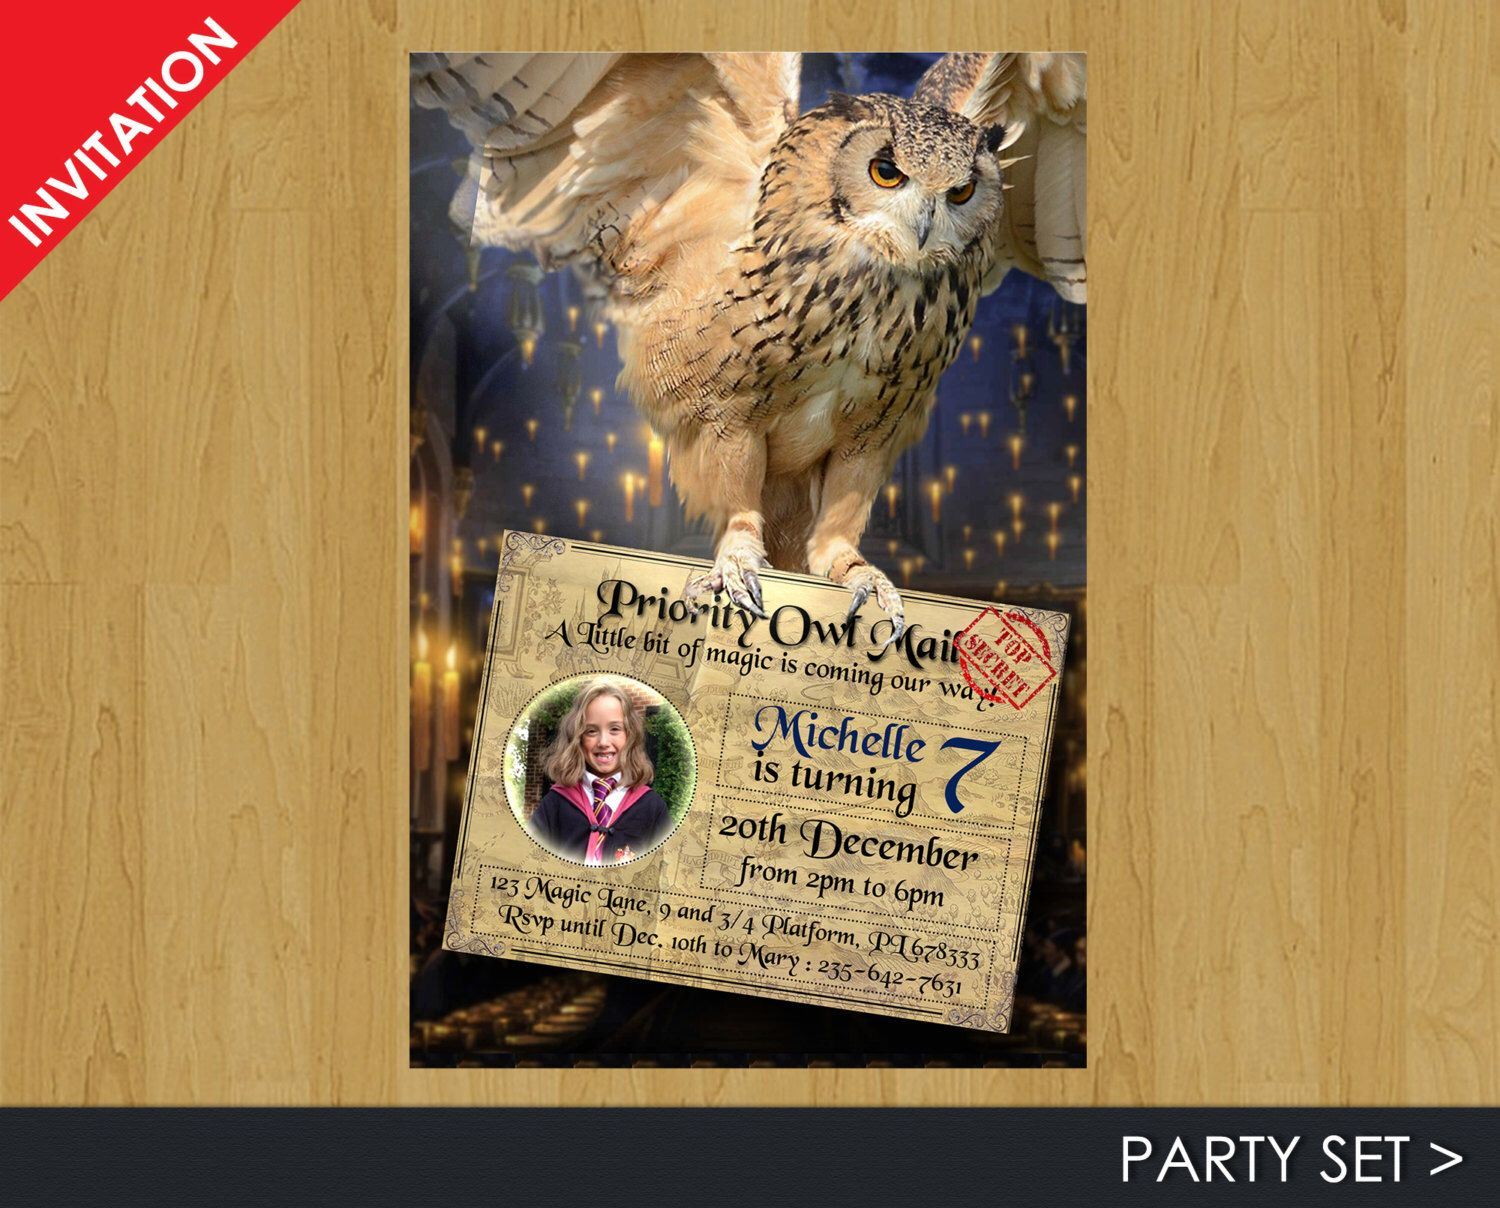 Digital harry potter invitation harry potter birthday invitation digital harry potter invitation harry potter birthday invitation birthday party set for harry potter party by printadorable on etsy stopboris Images